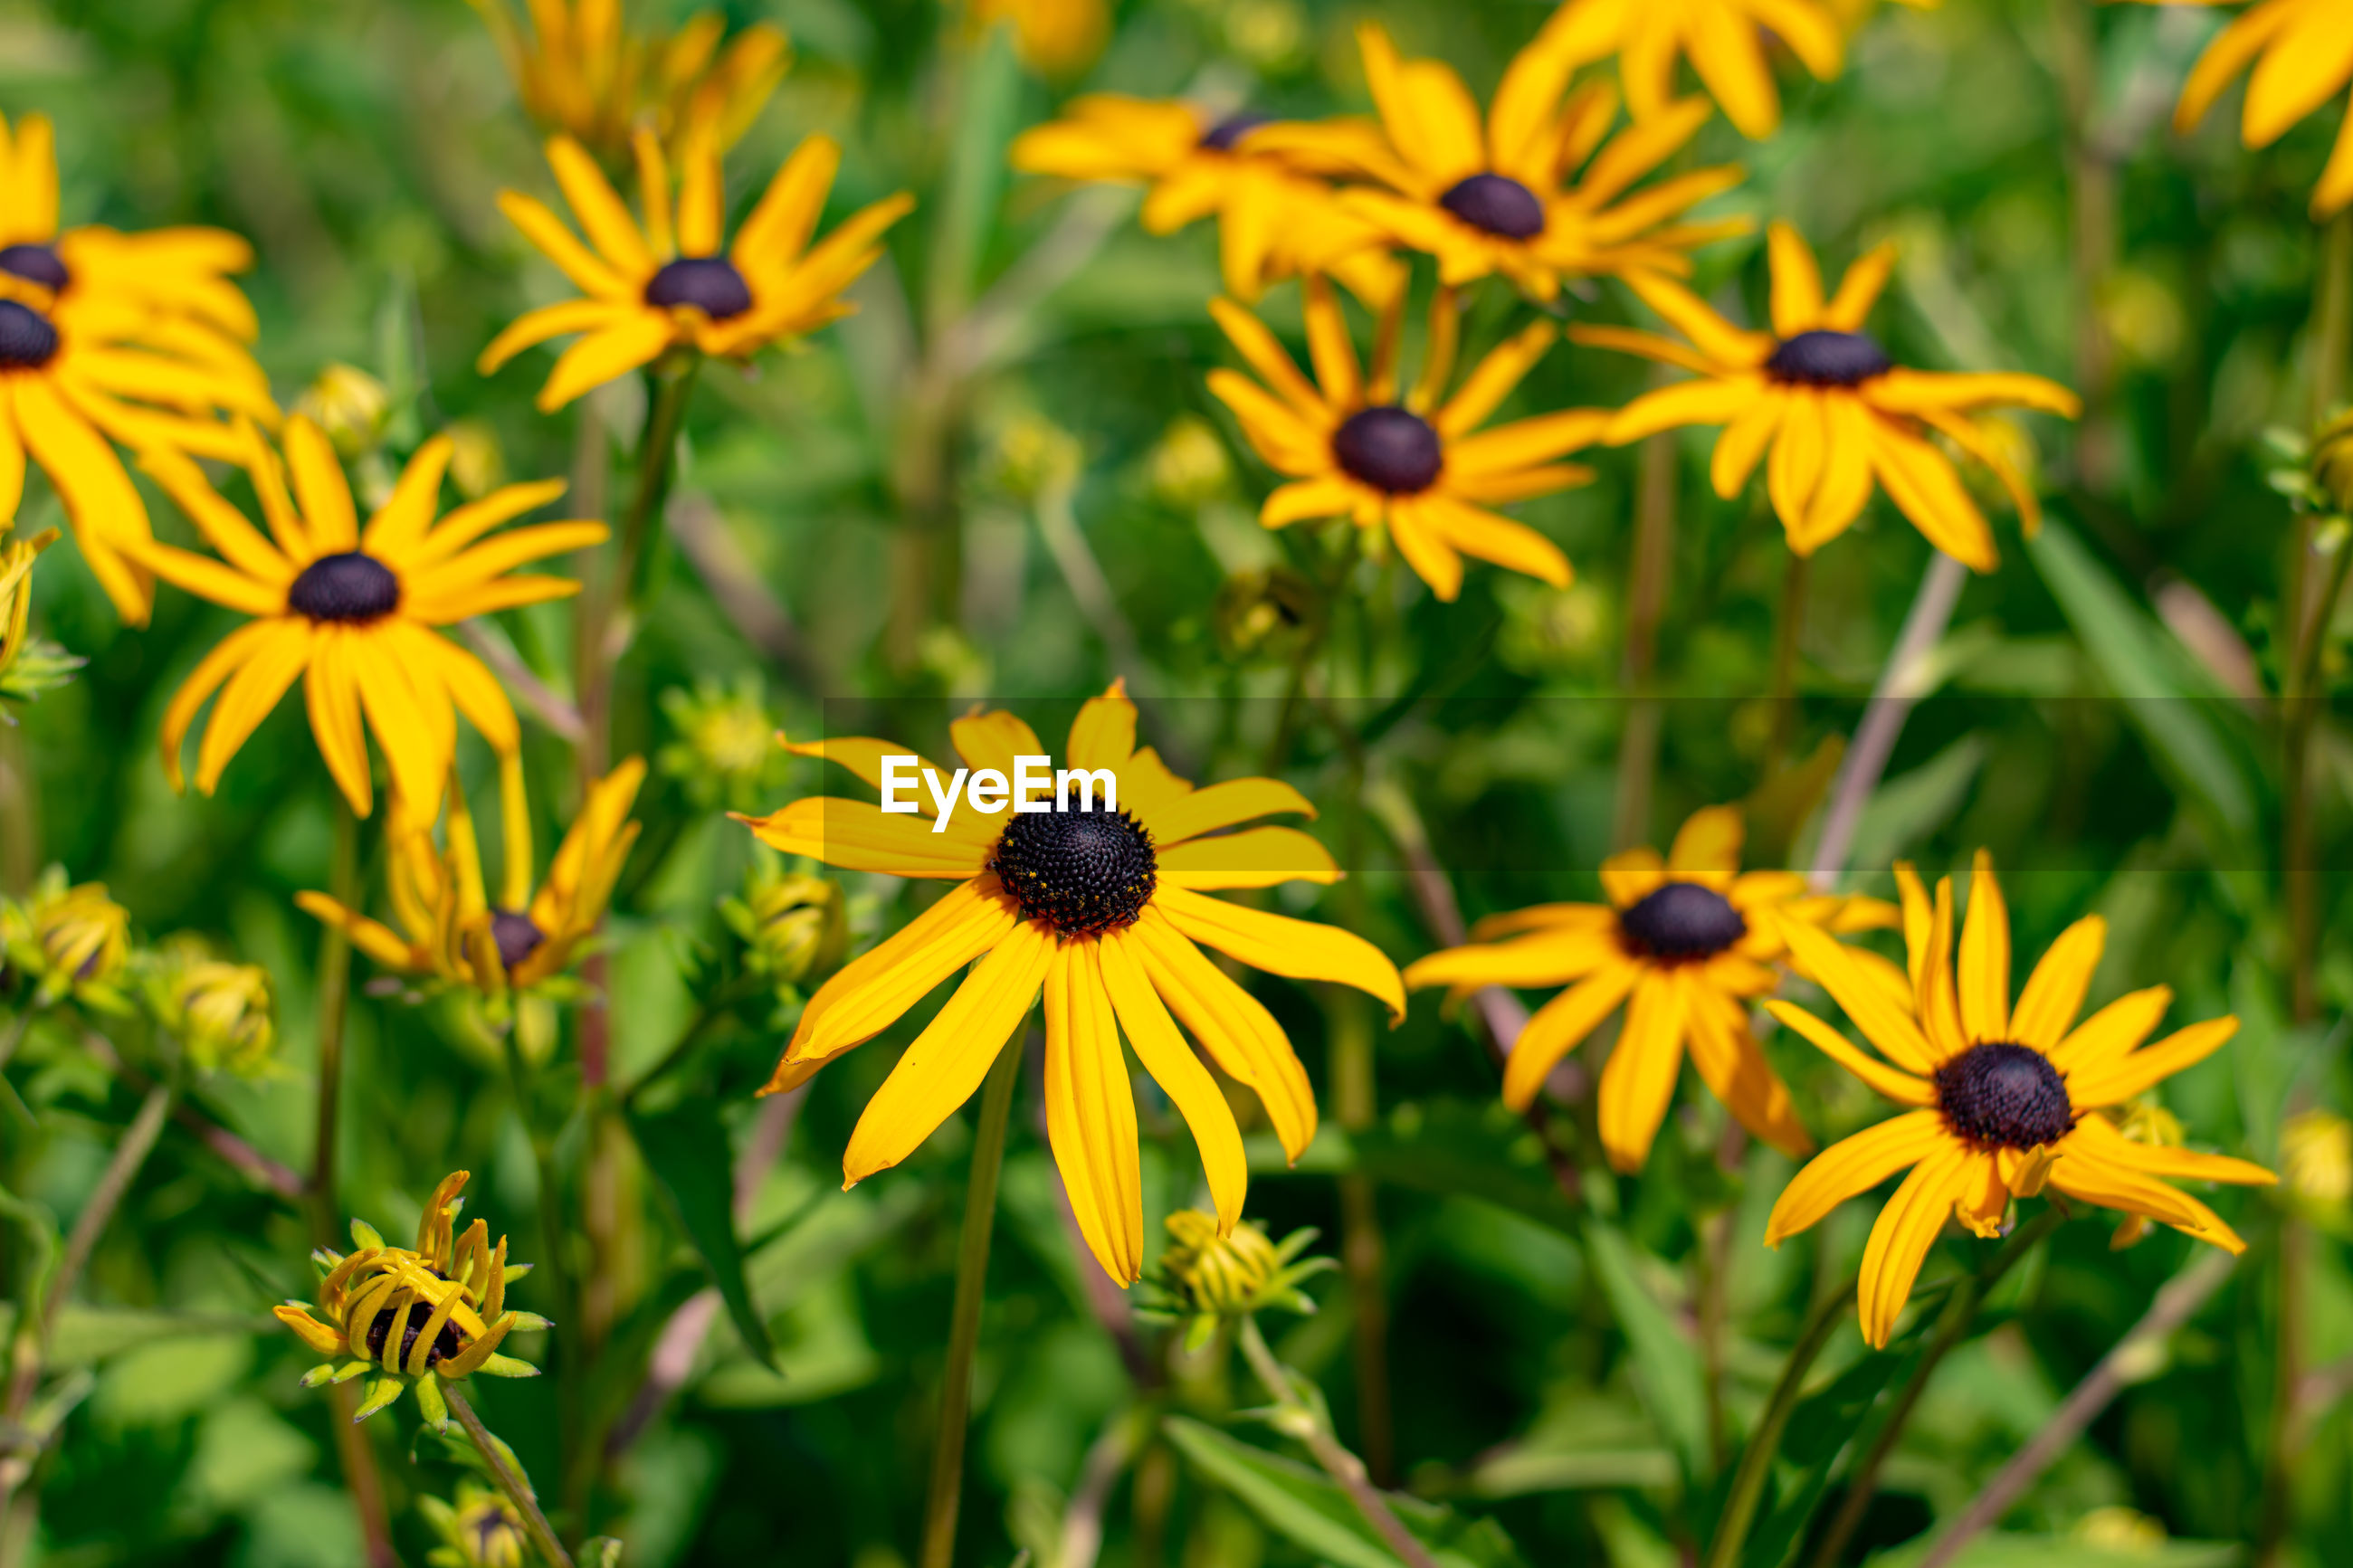 CLOSE-UP OF YELLOW BLACK-EYED AND PLANTS